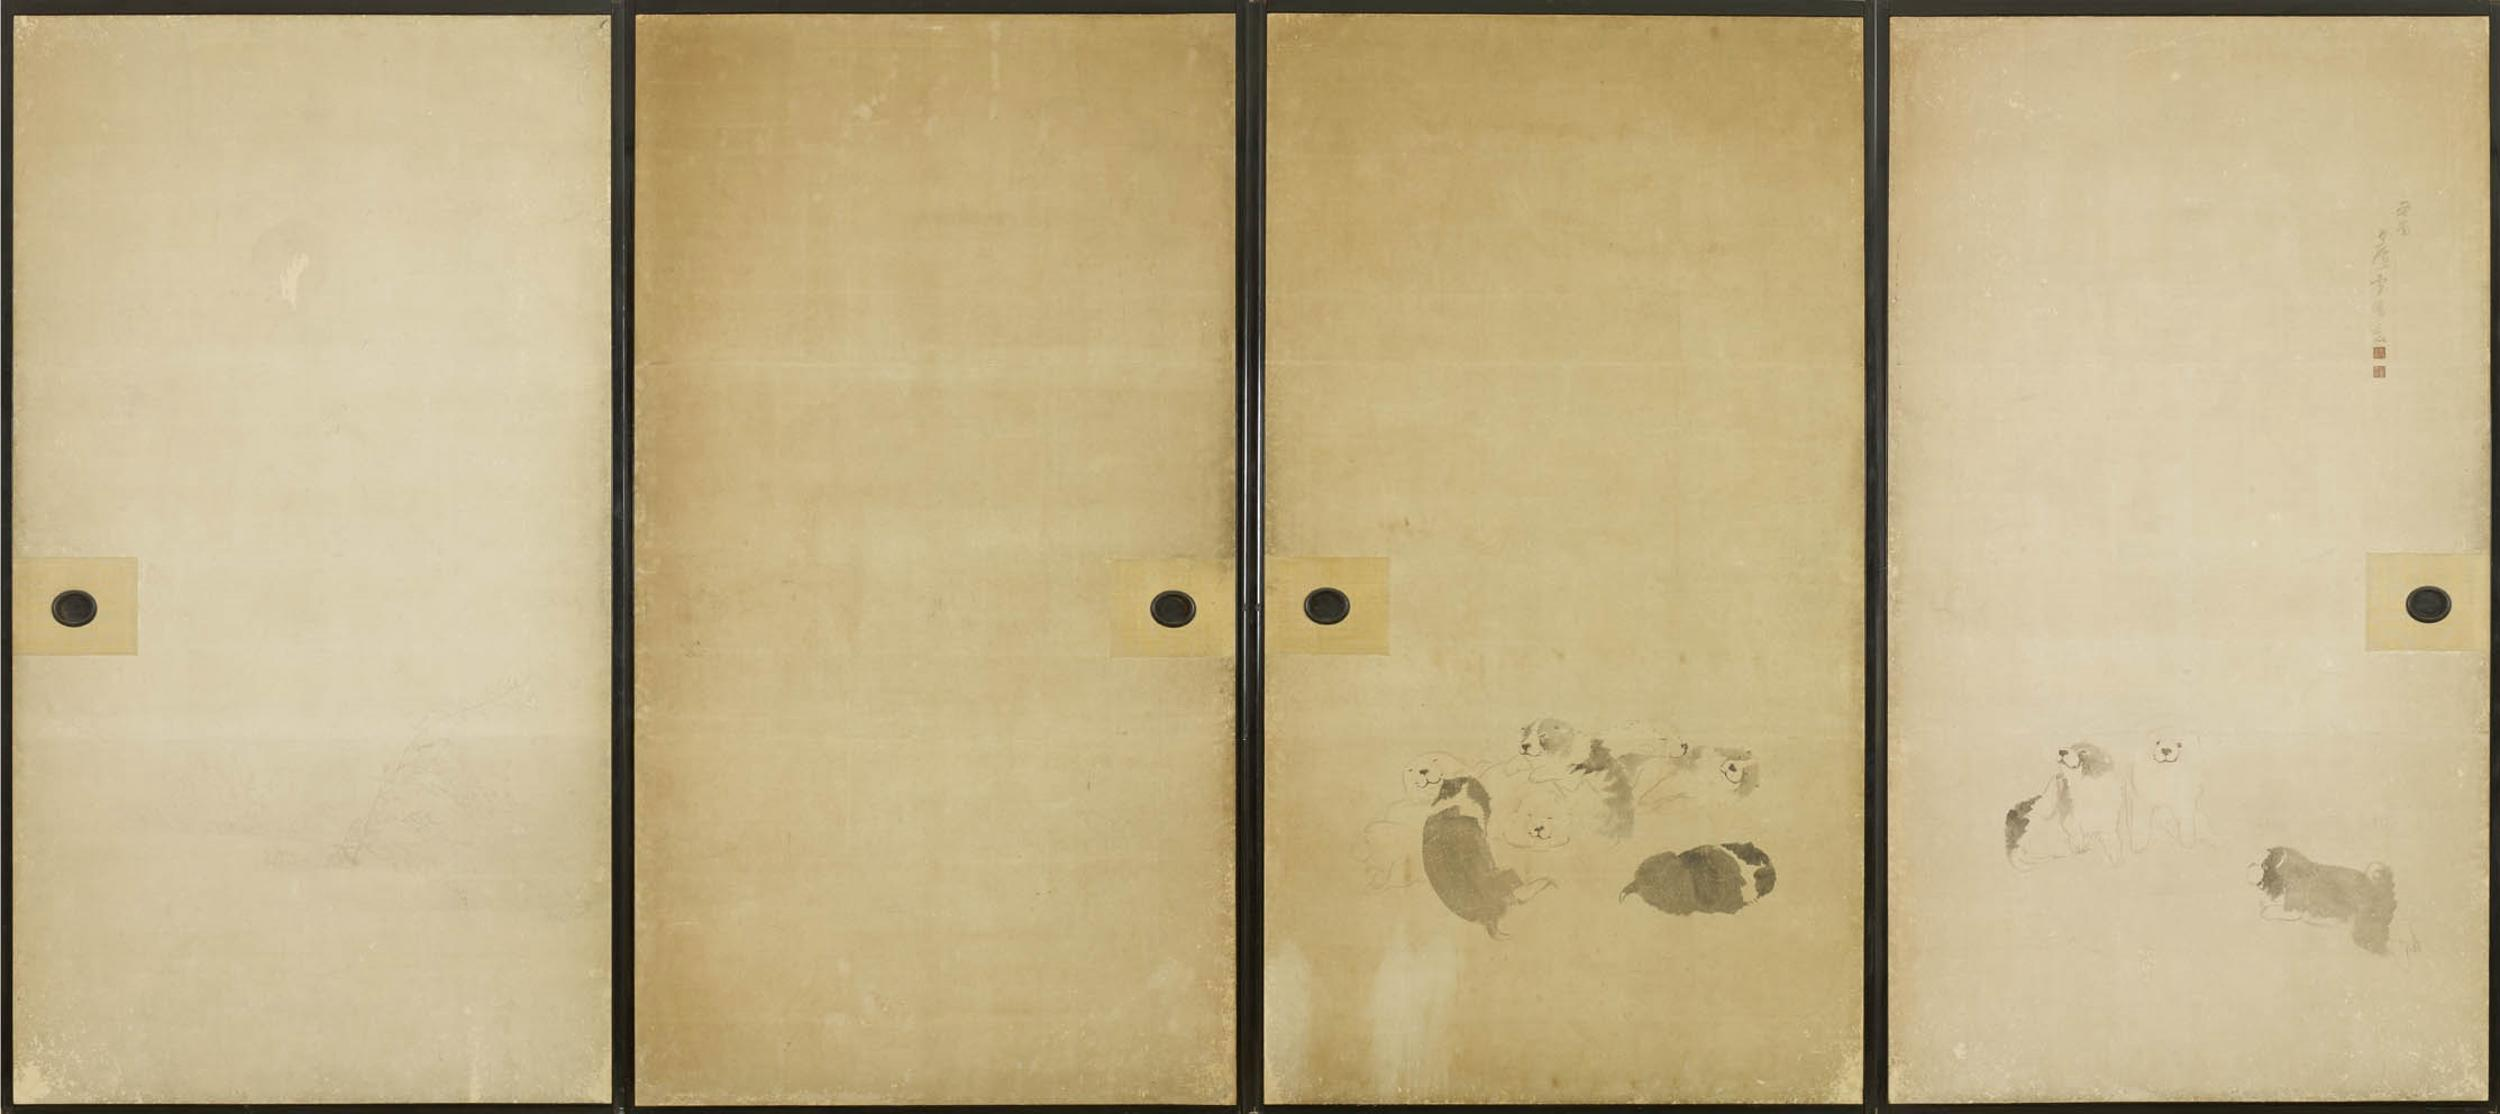 64564c A Set Of Four Fusuma Sliding Doors Painted In Ink On A